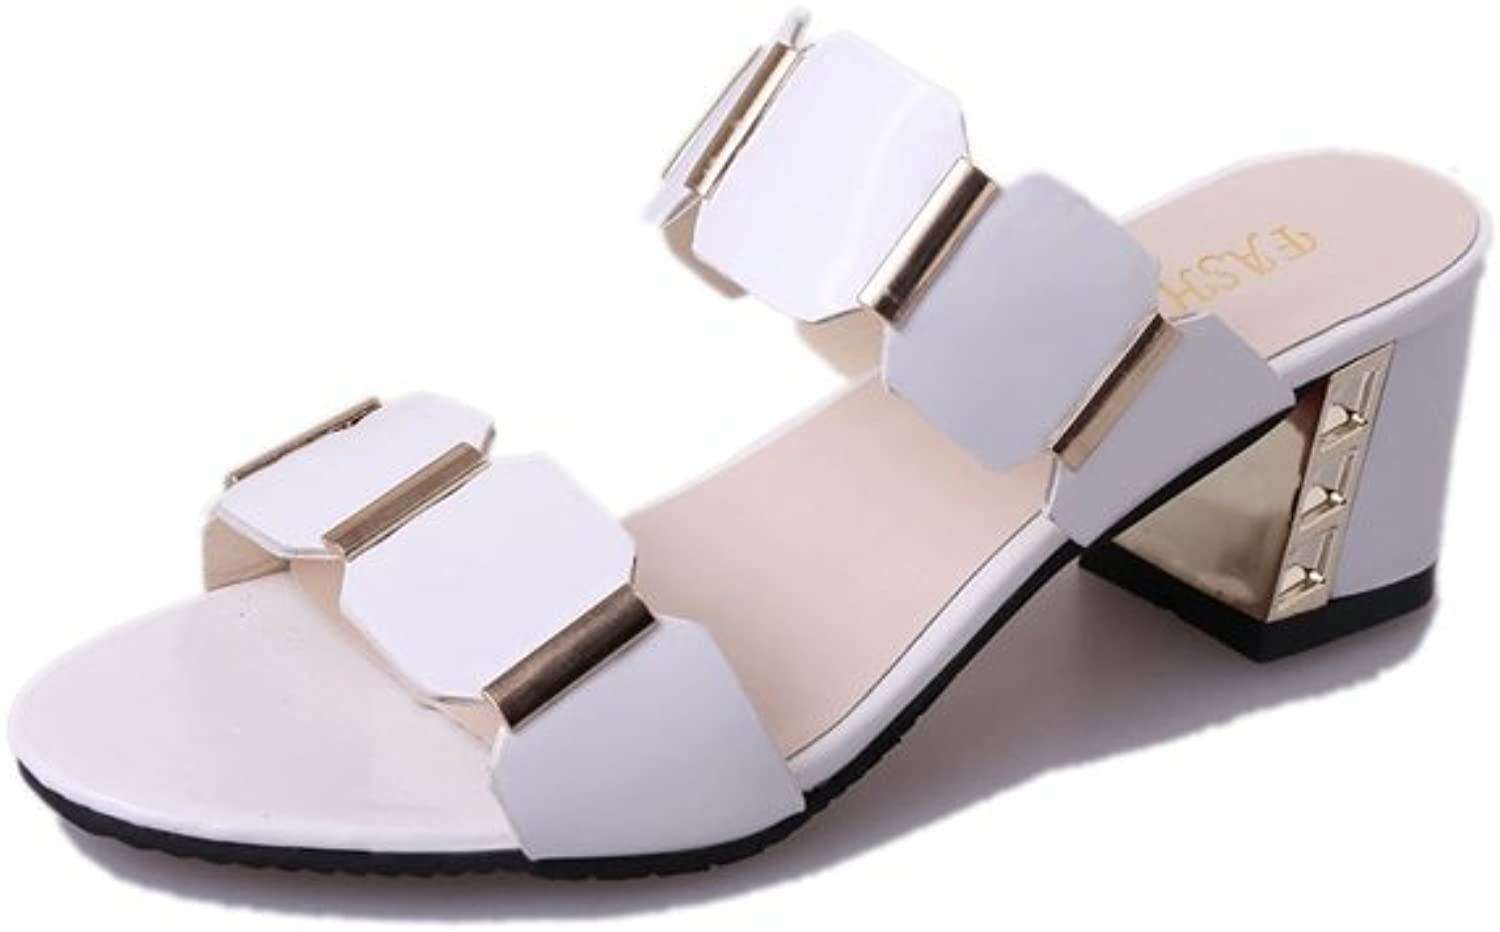 T-JULY Women Summer Beach Slide Sandals Girls Toe Open Middle Heels Non Skid Slipper